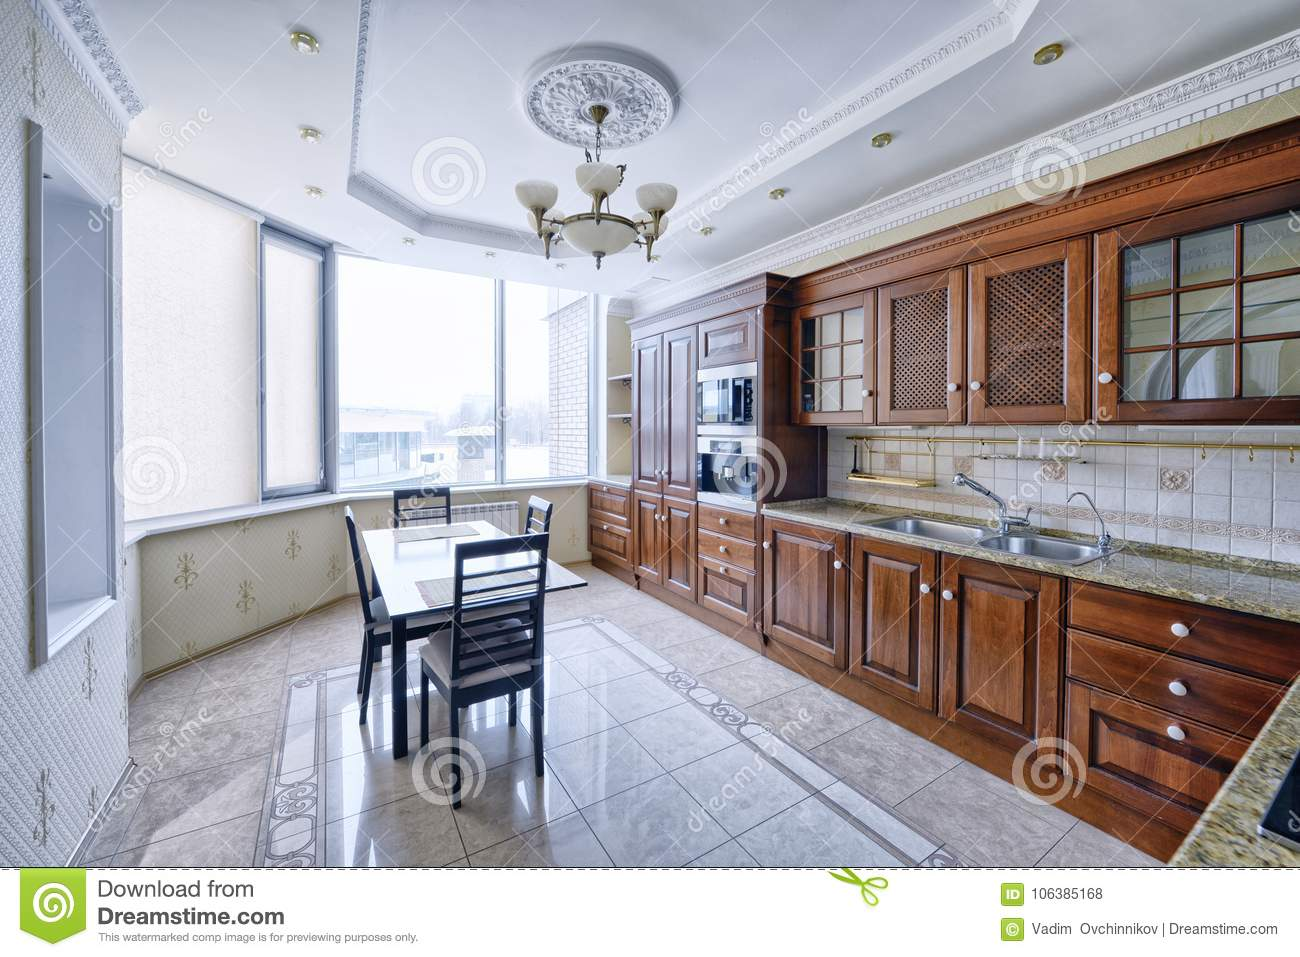 The kitchen is solid wood in a classic style in a modern house